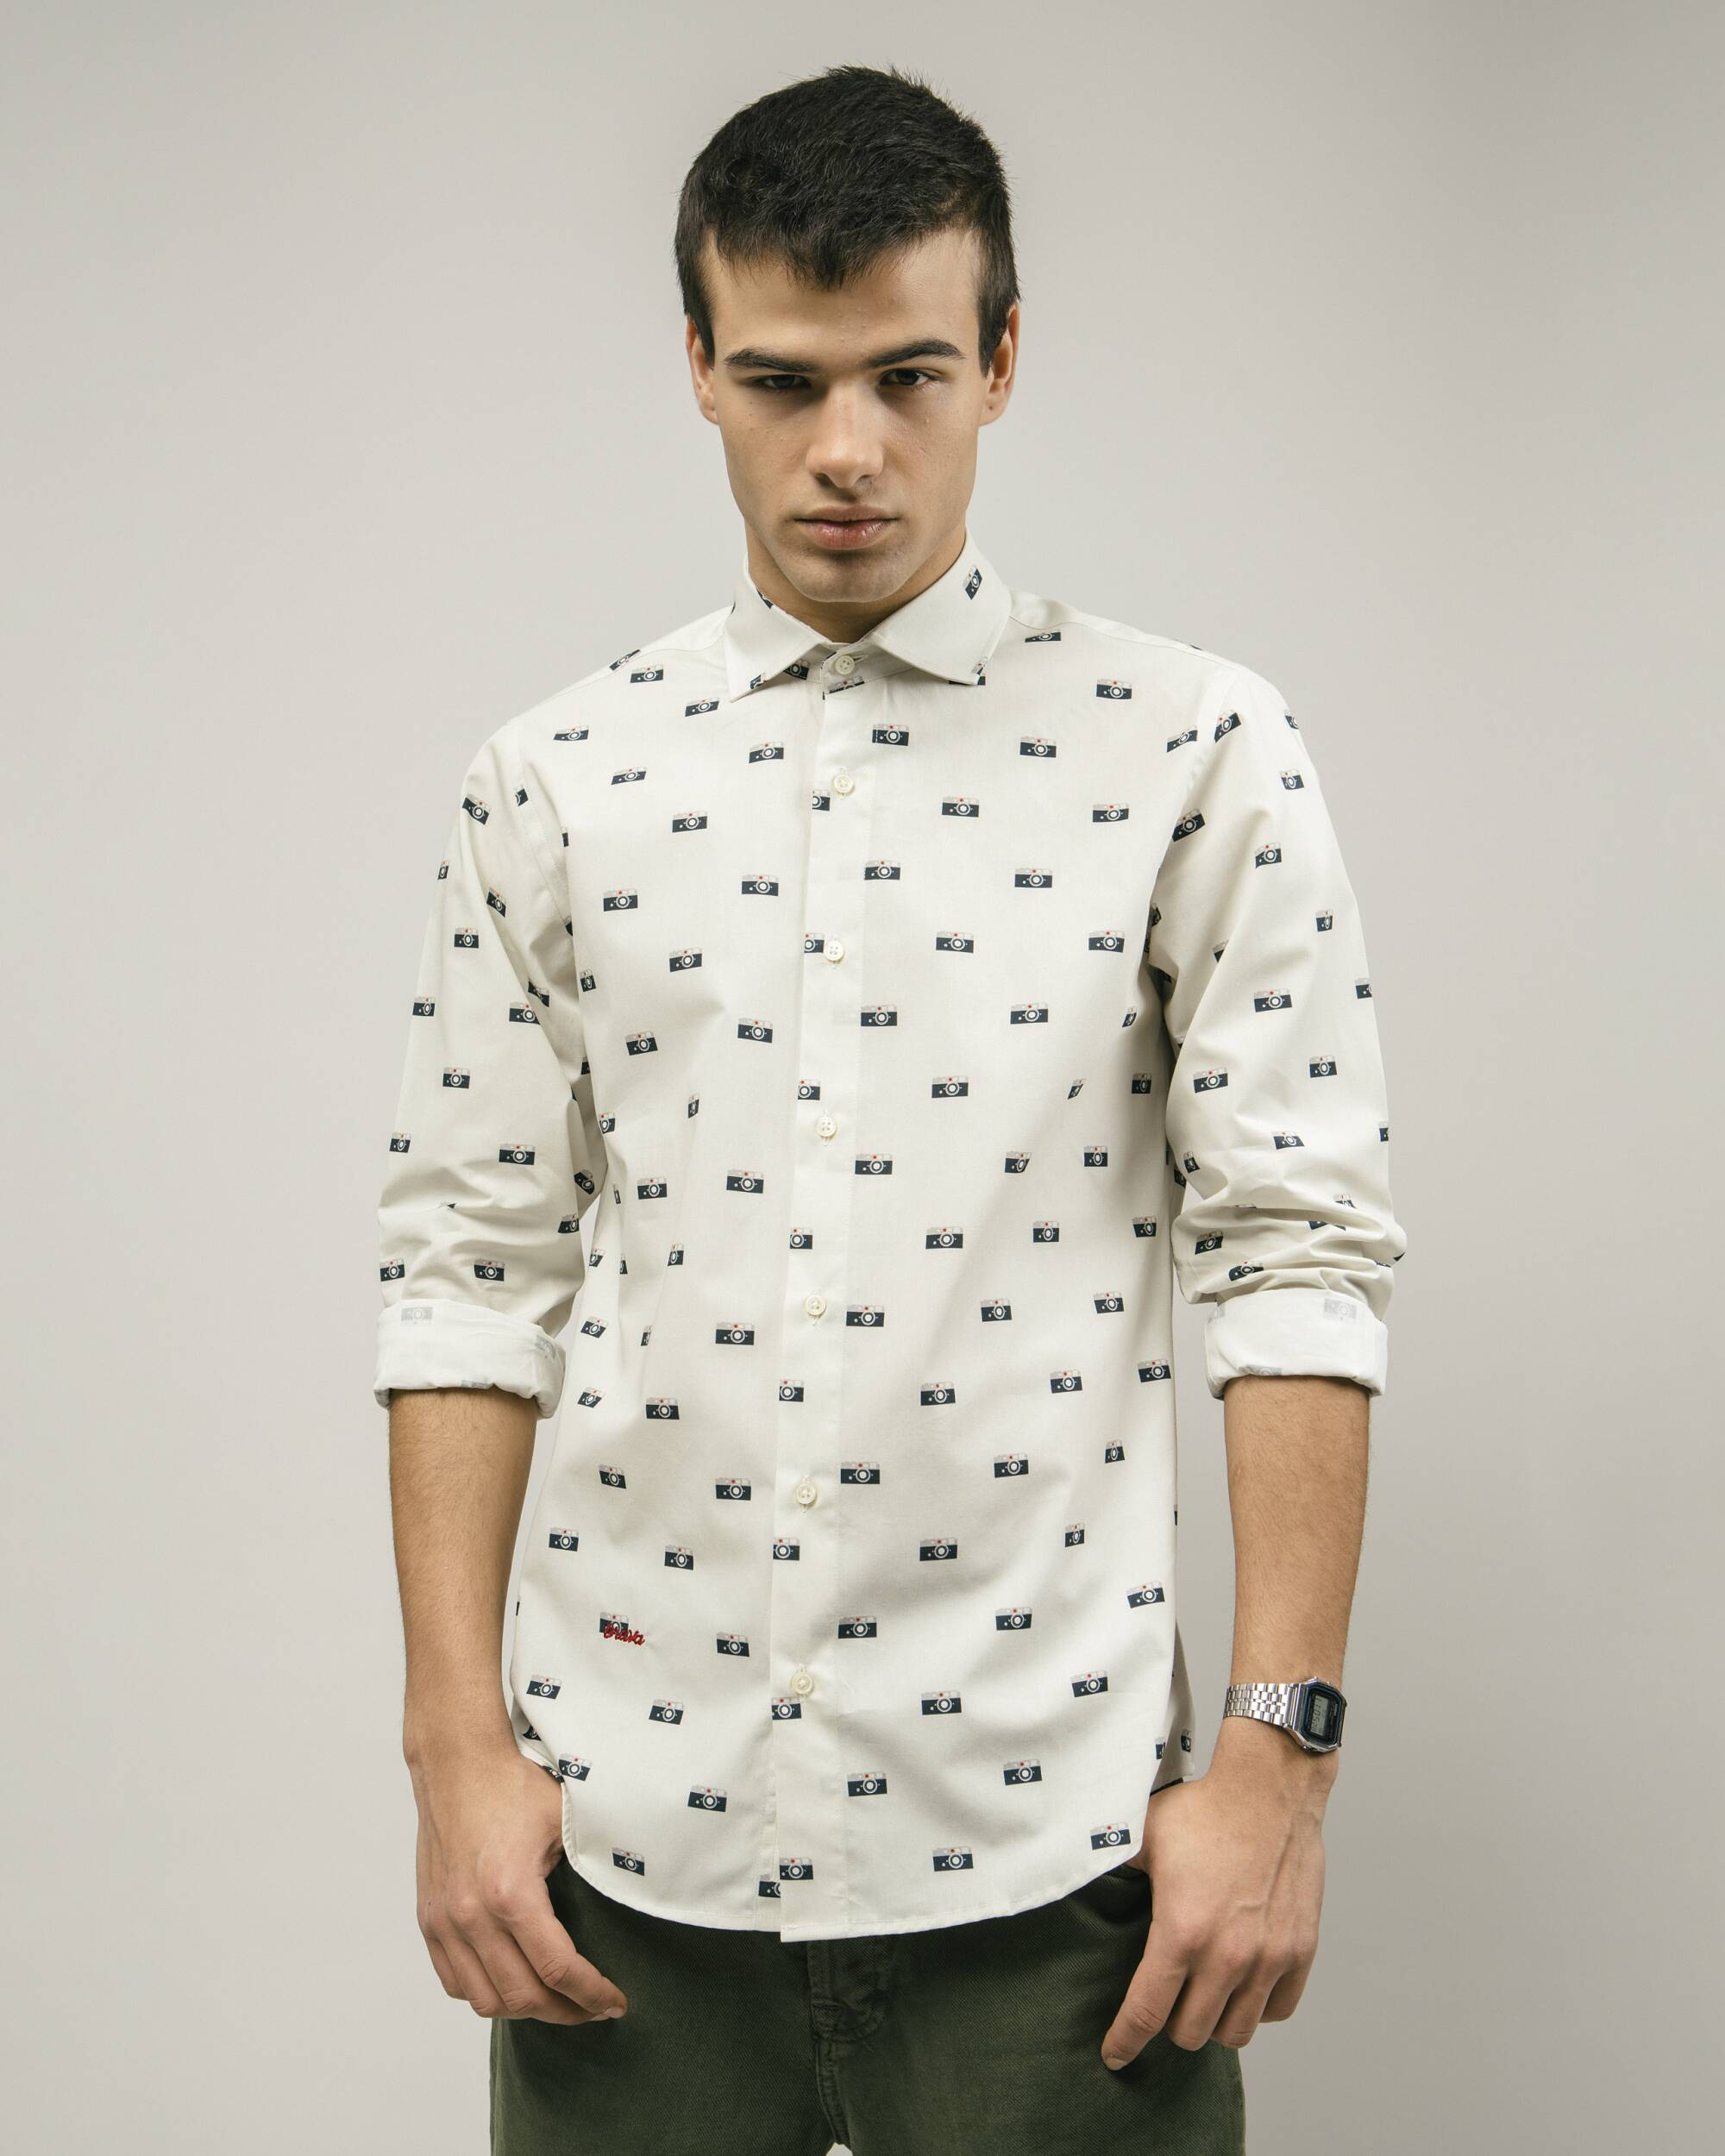 Capa's Camera Printed Shirt